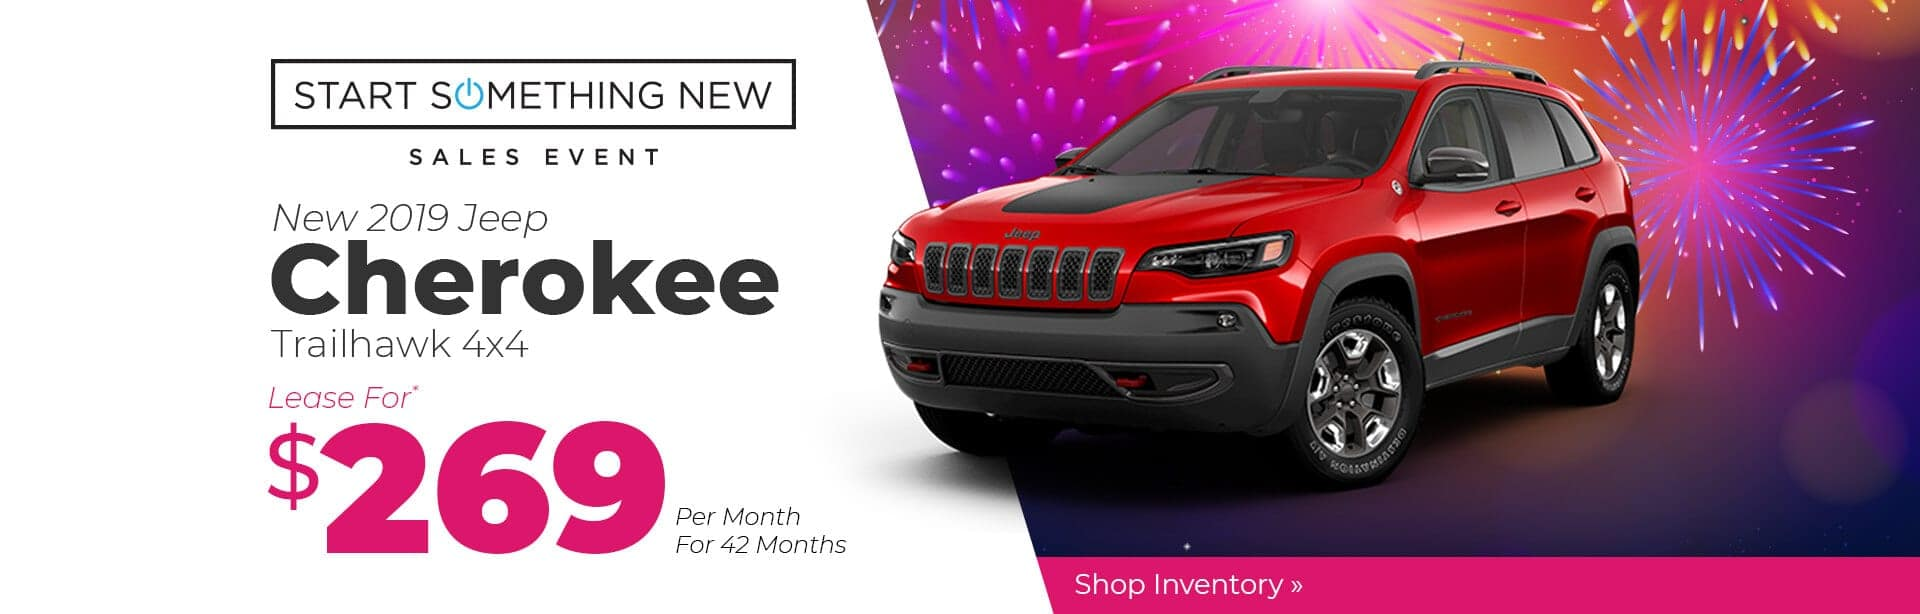 2019 Jeep Cherokee Trailhawk Lease Special near Lafayette, Indiana